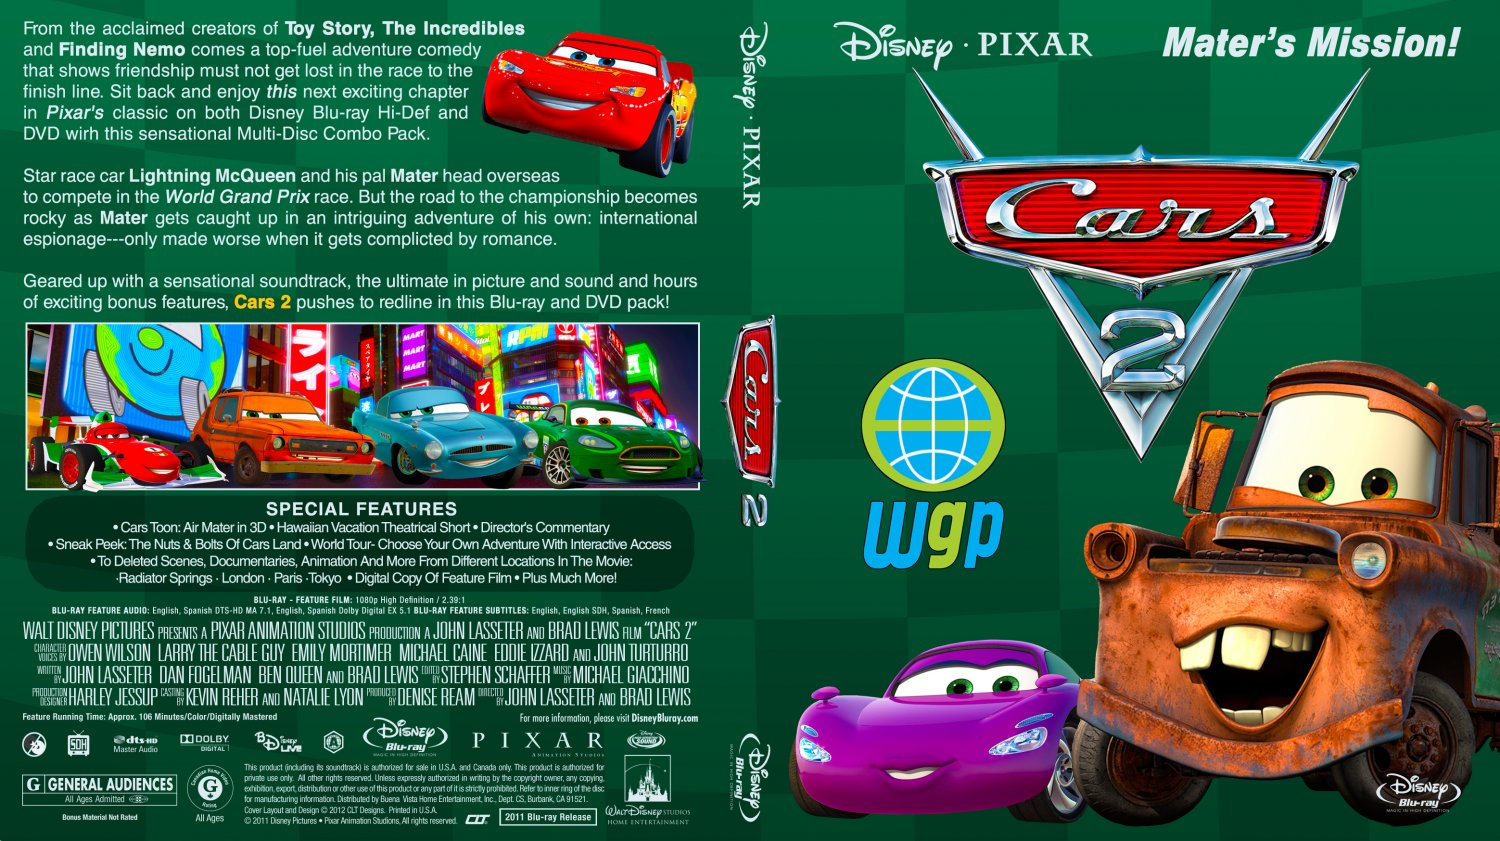 cars 2 movie blu ray custom covers cars2brcltv1 dvd covers. Black Bedroom Furniture Sets. Home Design Ideas